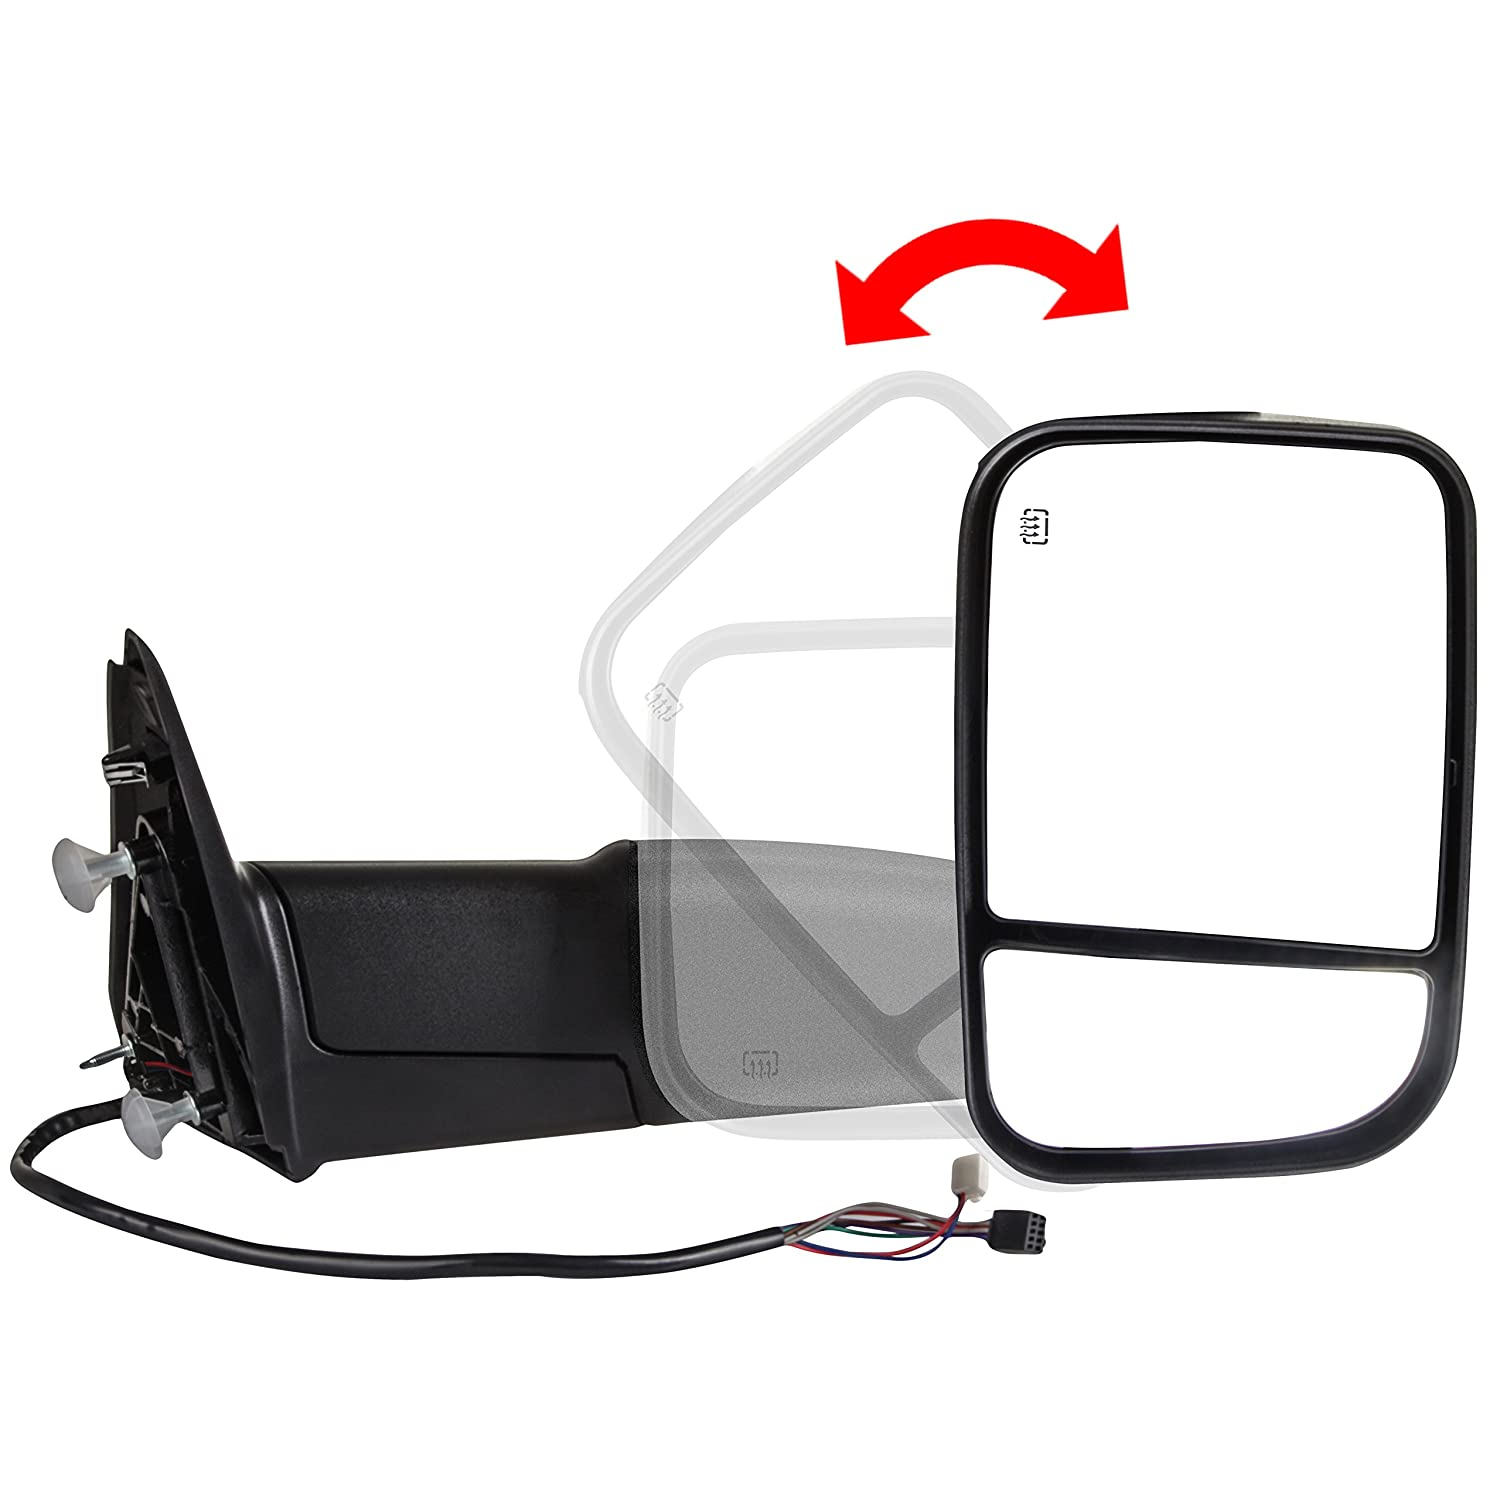 SCITOO Towing Mirrors Replace Mirror Parts with Power Heated/Function Compatible for fit 2010-2016 Dodge 1500 2500 3500 Models Comes with Pair Mirrors 065062-5206-1501278713